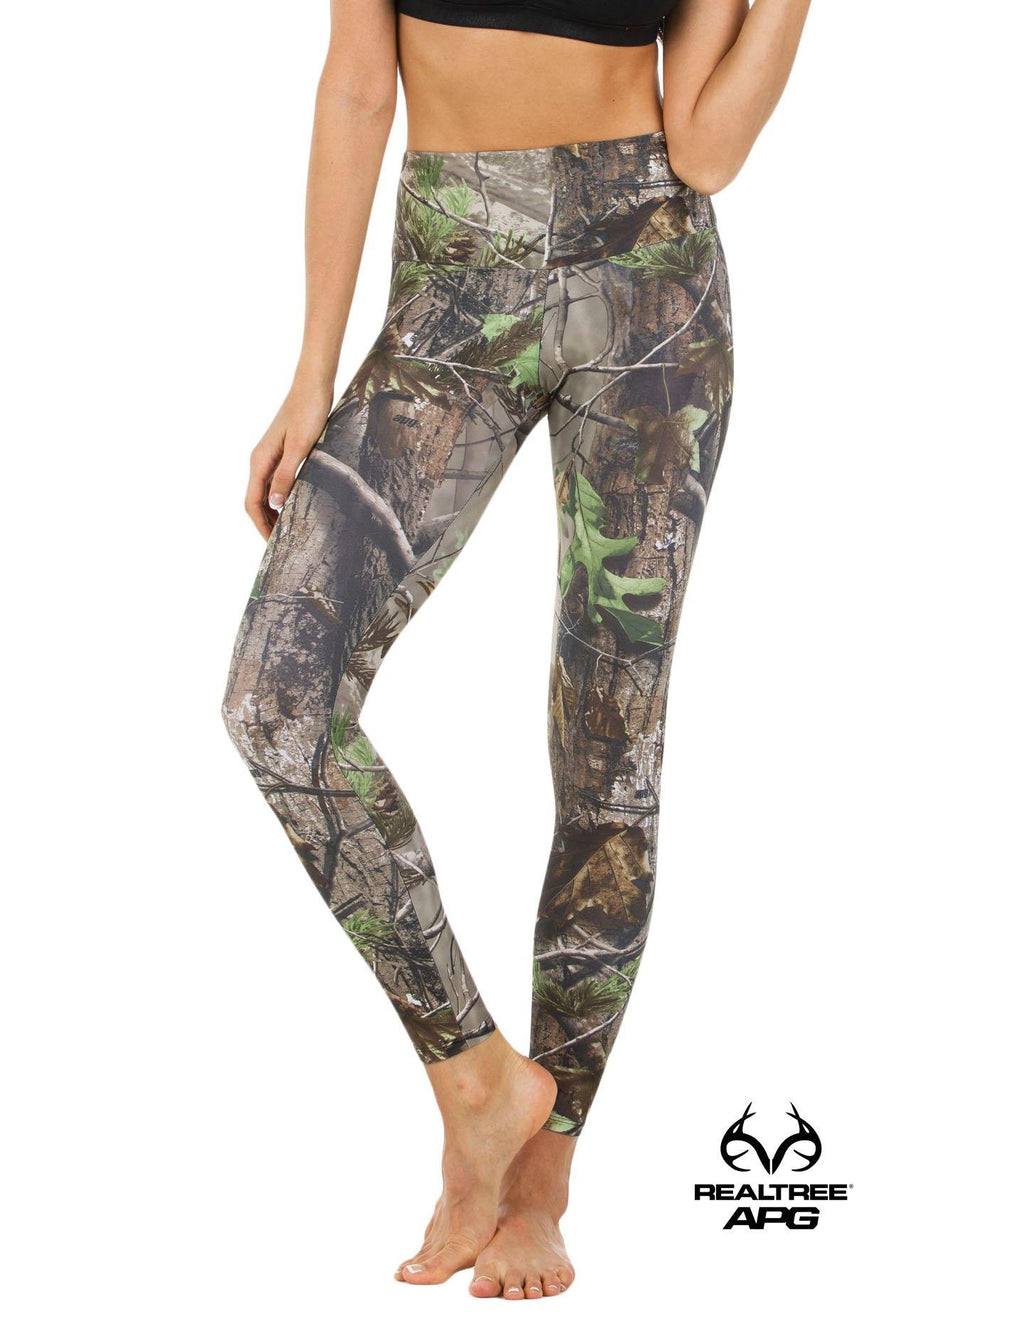 Apsara Leggings High Waist Full Length, Realtree APG - Apsara Style